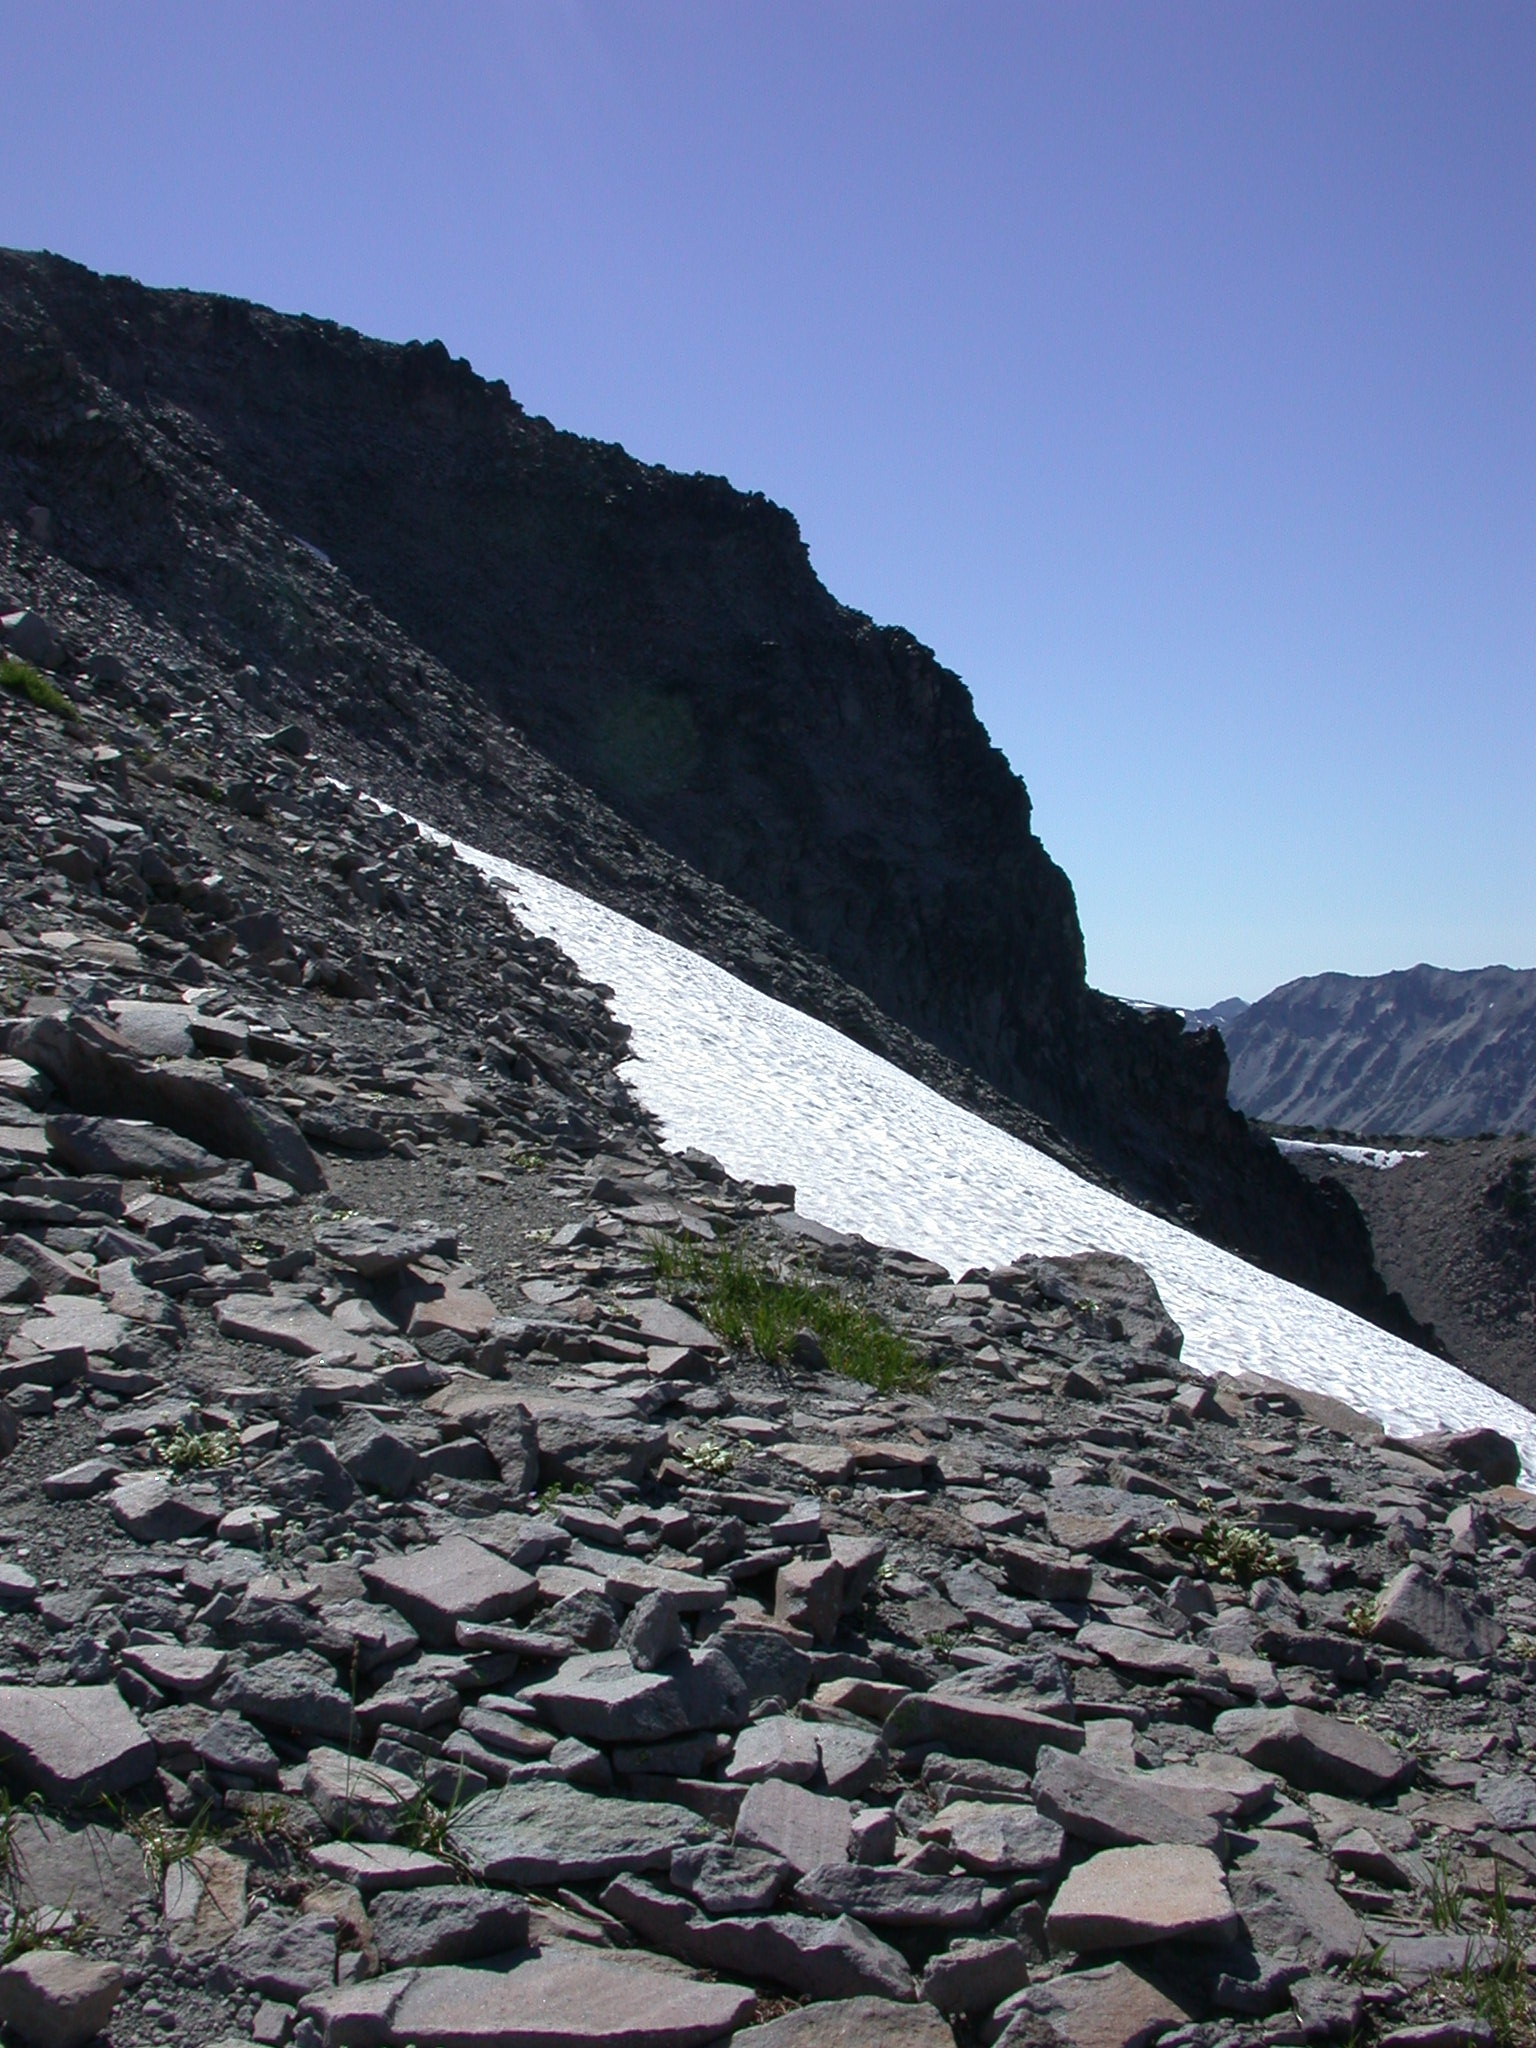 Snow on Trail From Burroughs Peak I to Burroughs Peak II on Mount Rainier